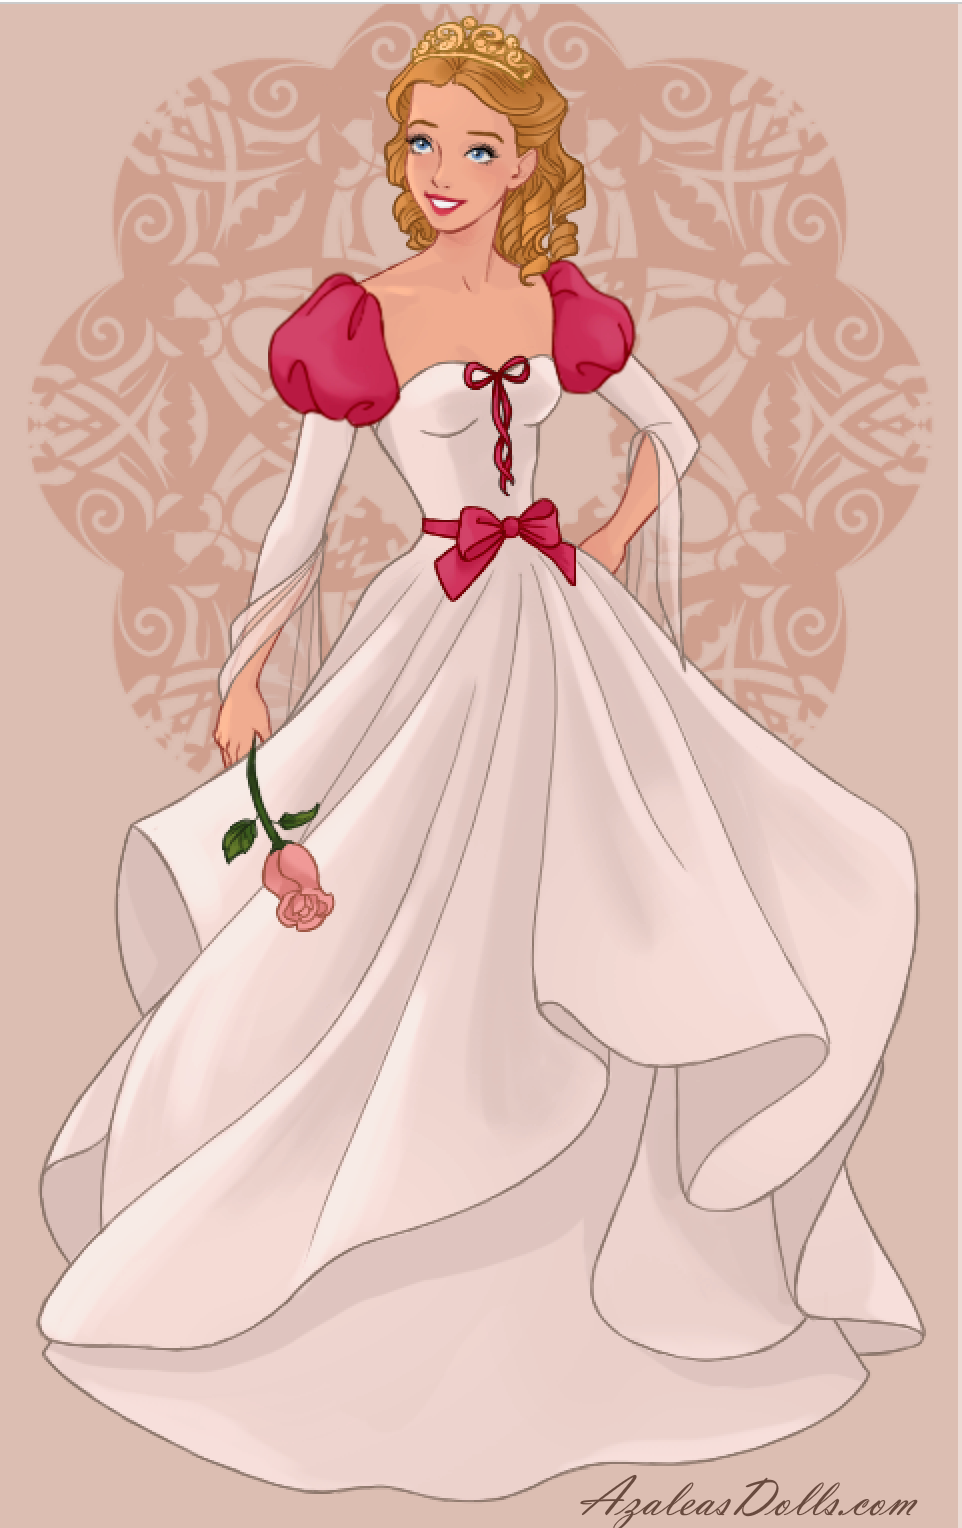 Sleeping Beauty The Princess Of The Fairy Tale In Wedding Dress Design Dress Up Game Princess Cartoon Disney Princess Art Disney Princess Fashion